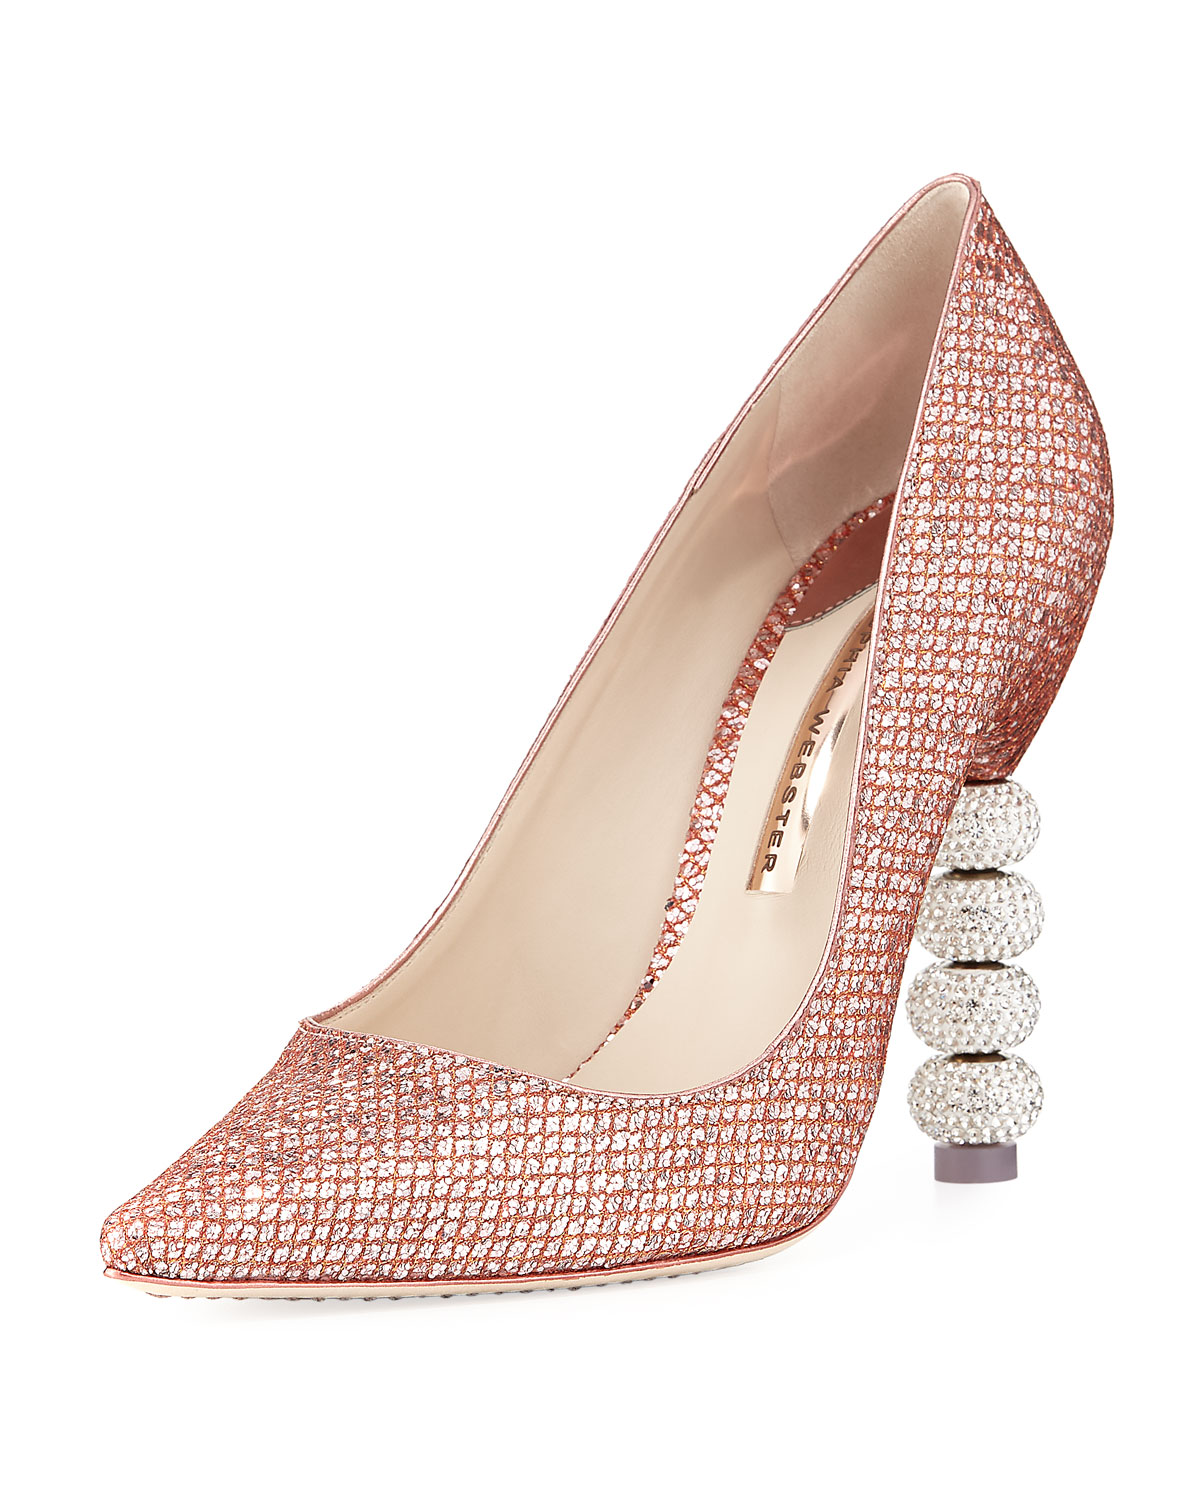 731d1cc21e6 Sophia Webster Coco Crystal-Embellished Major Pumps